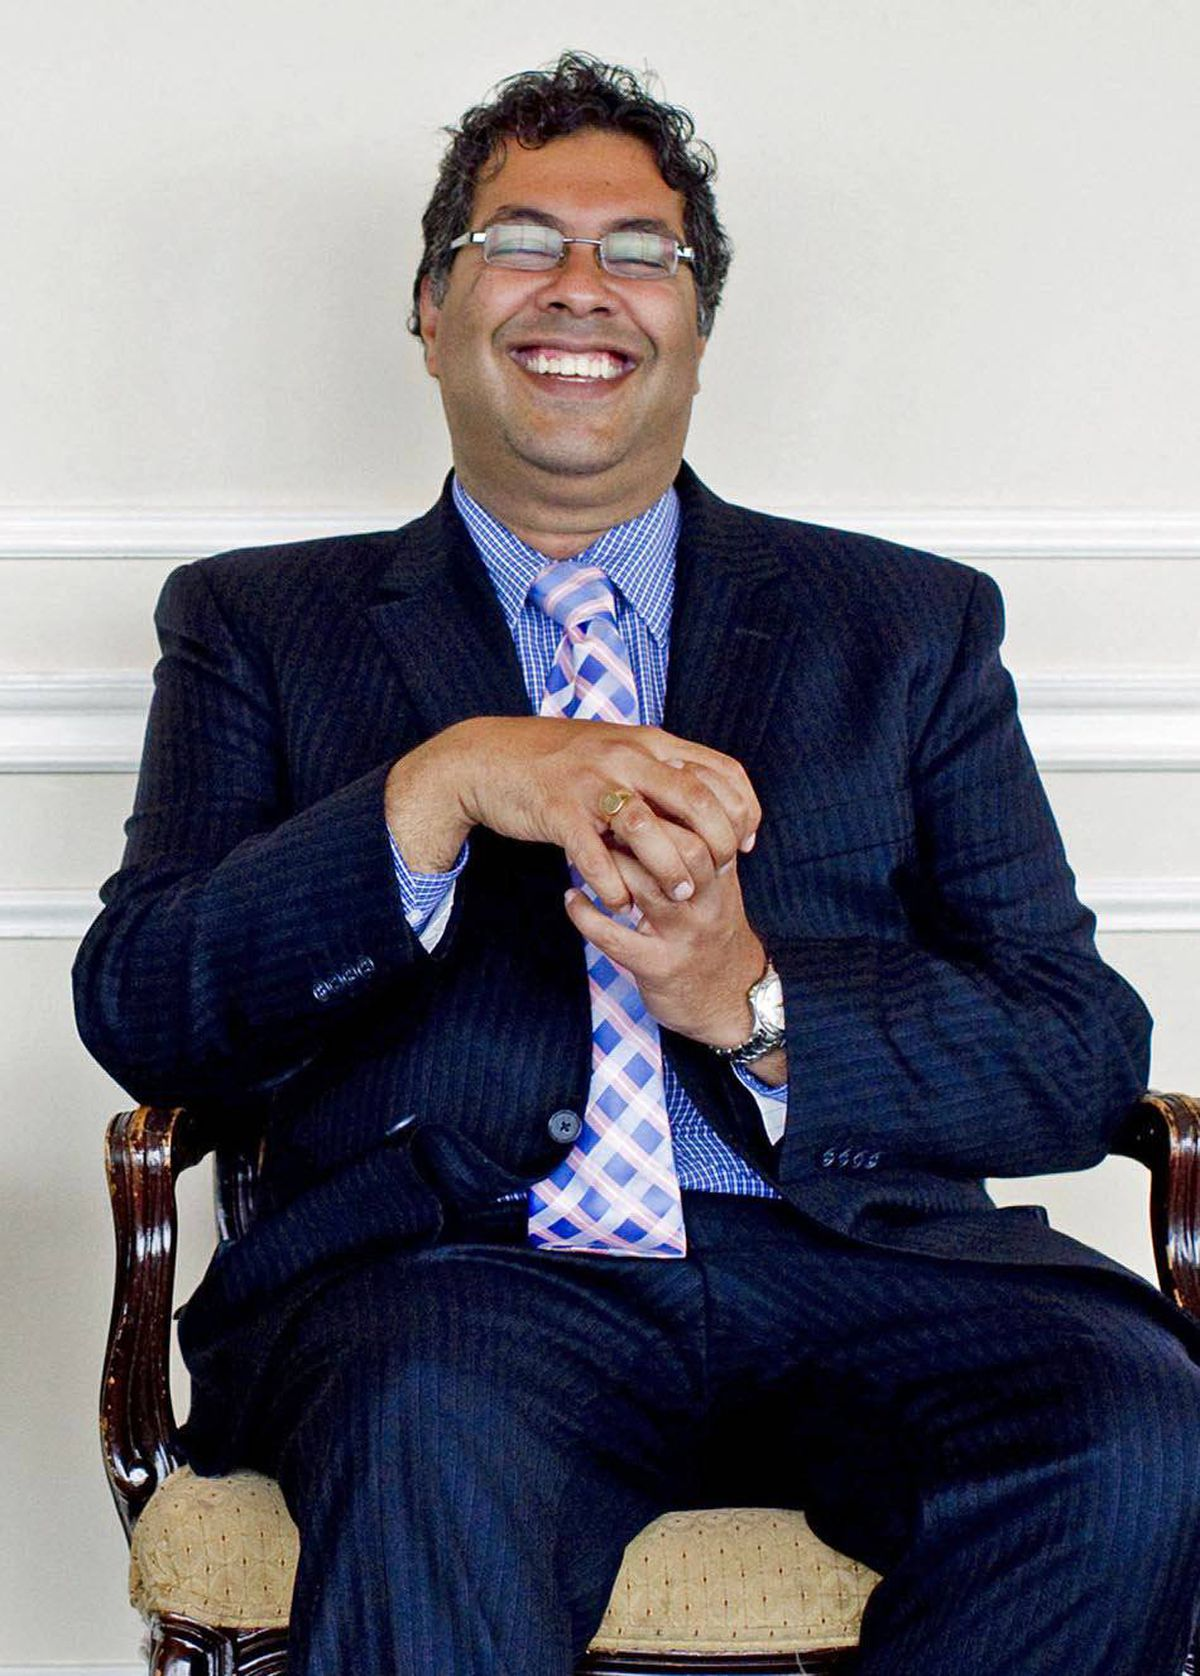 Naheed Nenshi Who wouldn't want to be Calgary's first lady? Just be warned that you'll have to share the social-media mayor – who adorably still lives with his parents in N.E. Calgary – with Twitter.